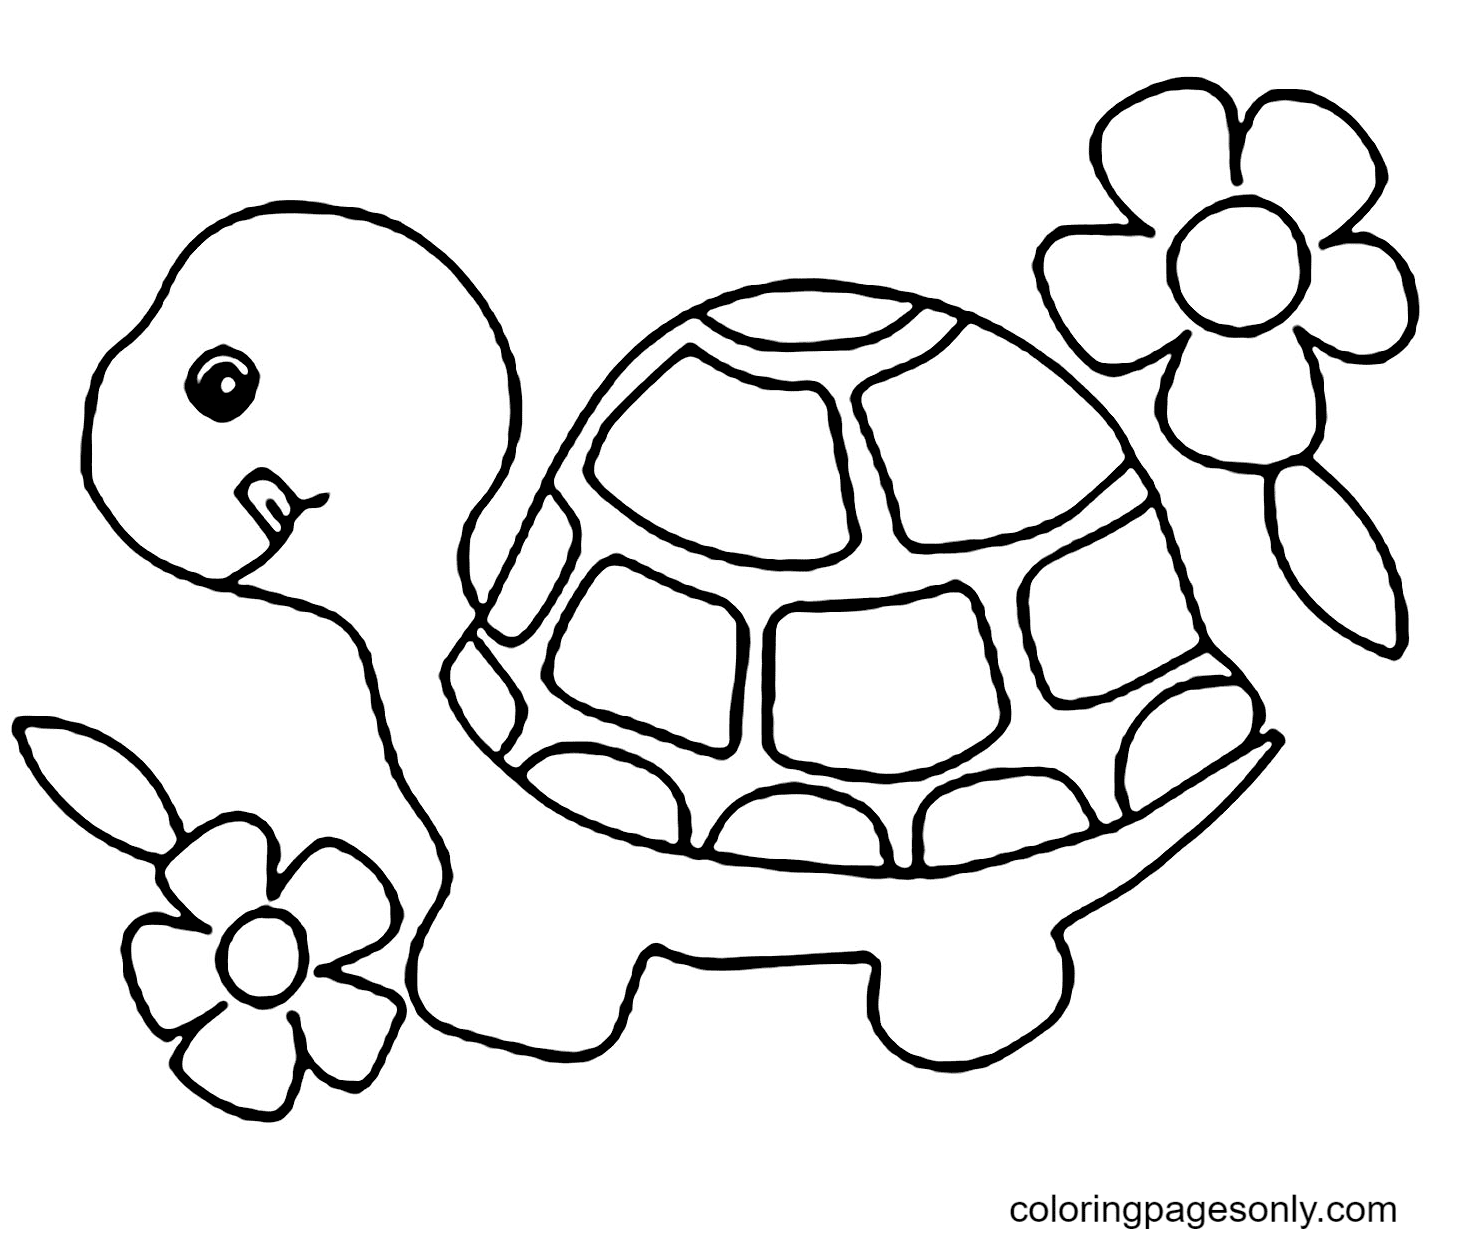 Turtle with Flowers Coloring Page